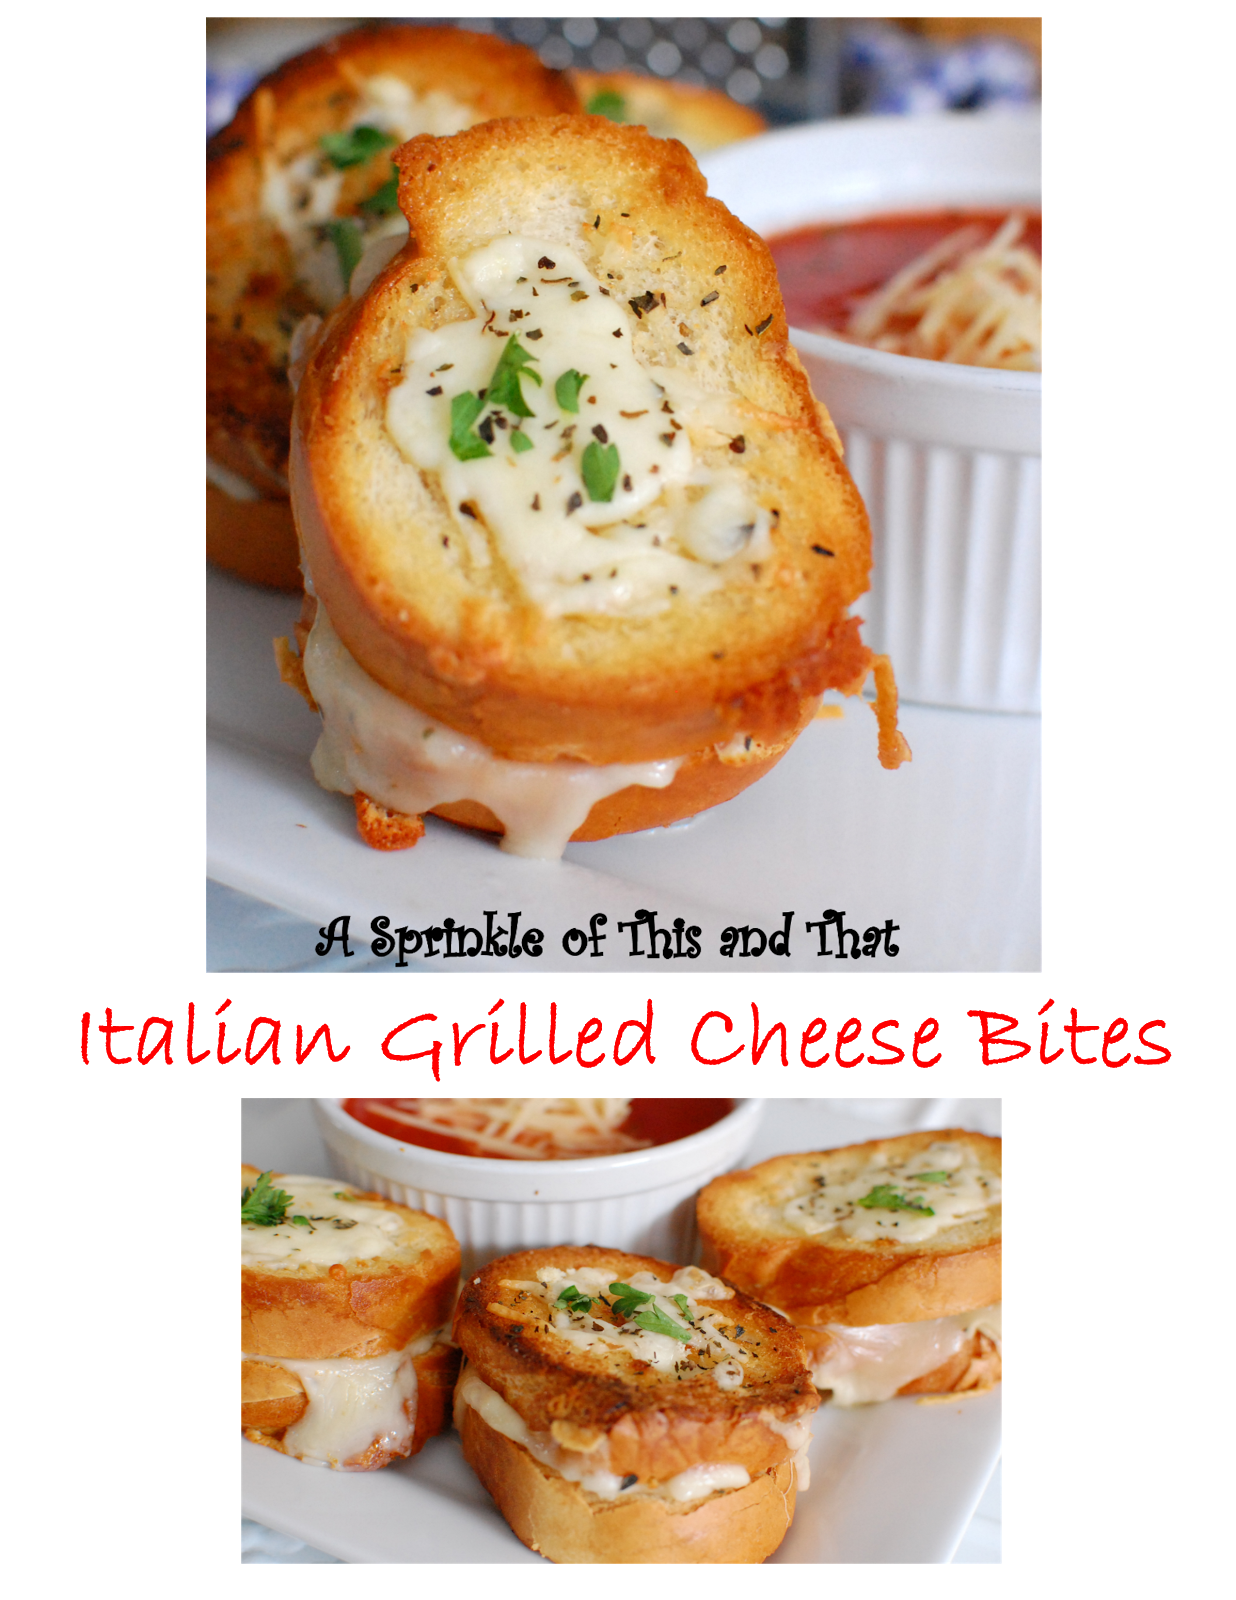 Italian Grilled Cheese Bites at A Sprinkle of This and That.  Grilled cheesy goodness in little bite sized sandwiches.